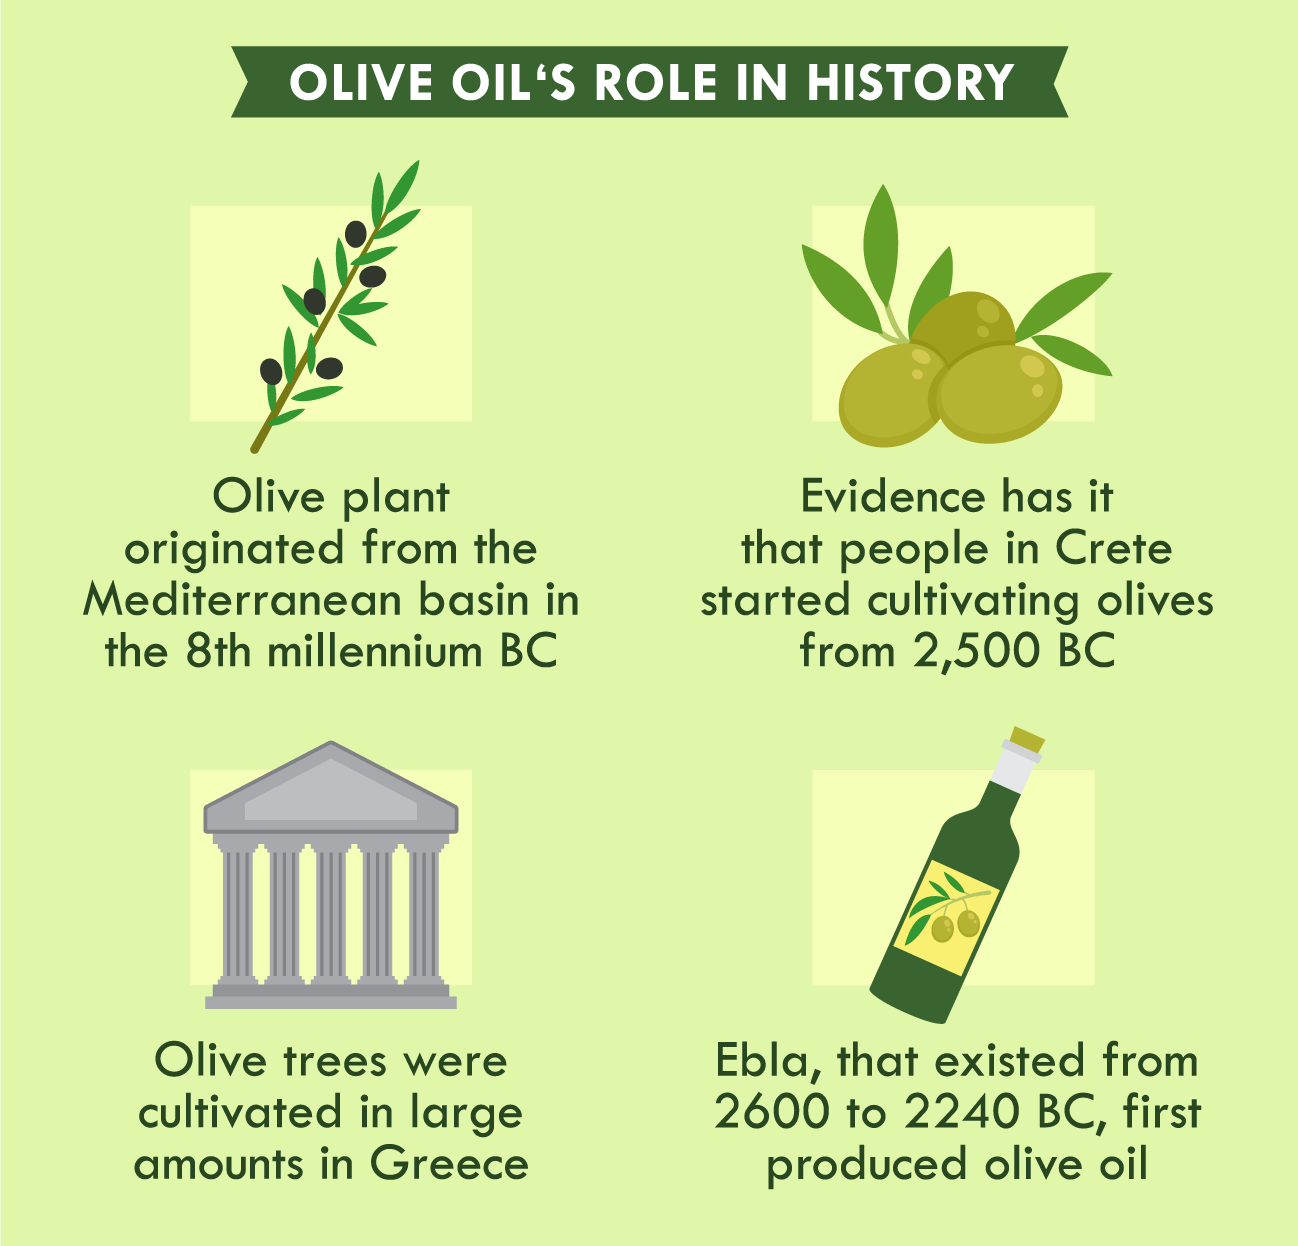 illustration of olive oil's role in history